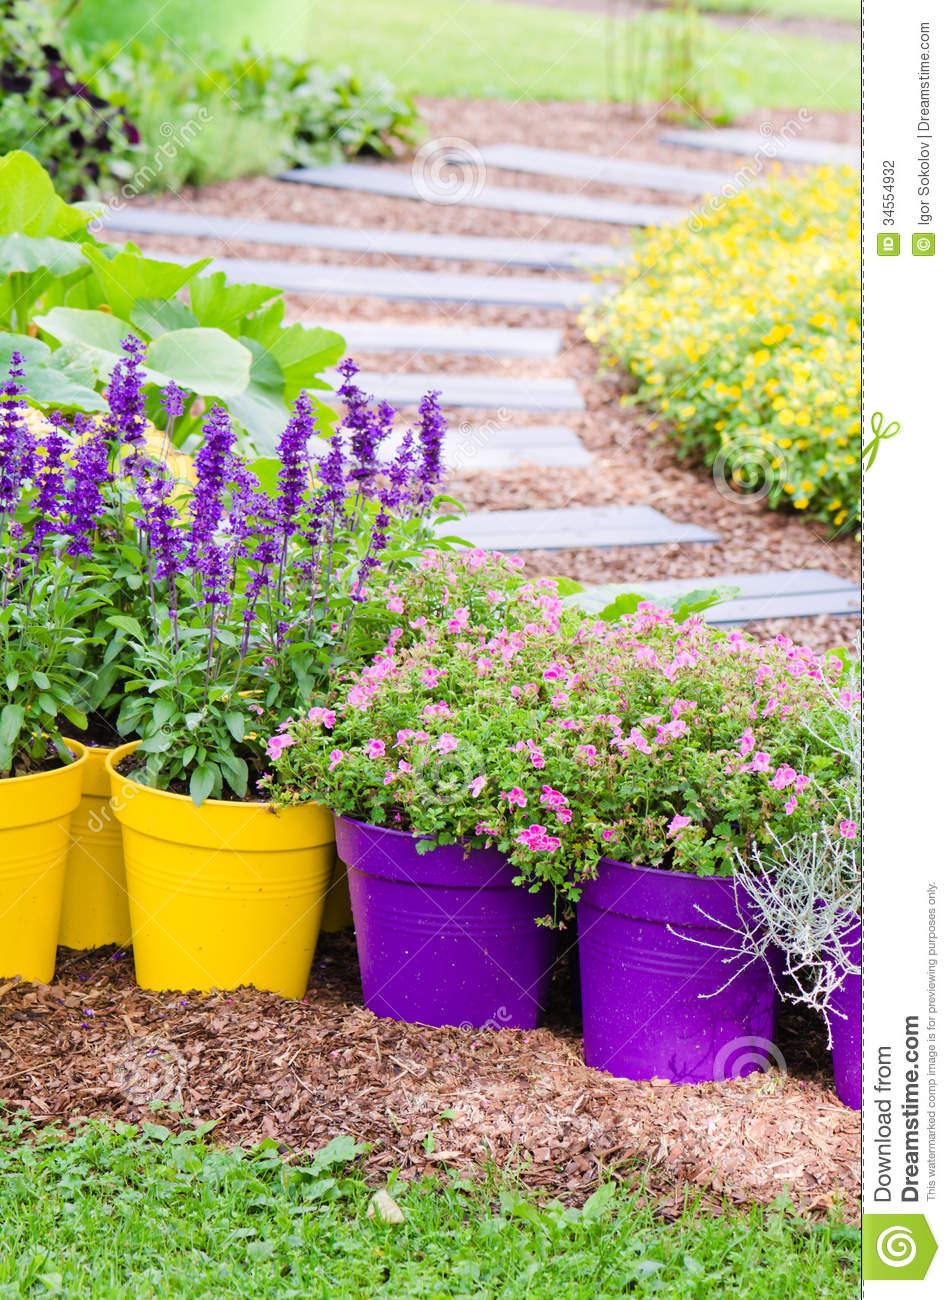 Huge Flower Garden : Large plant pots with flowers in the garden stock photo